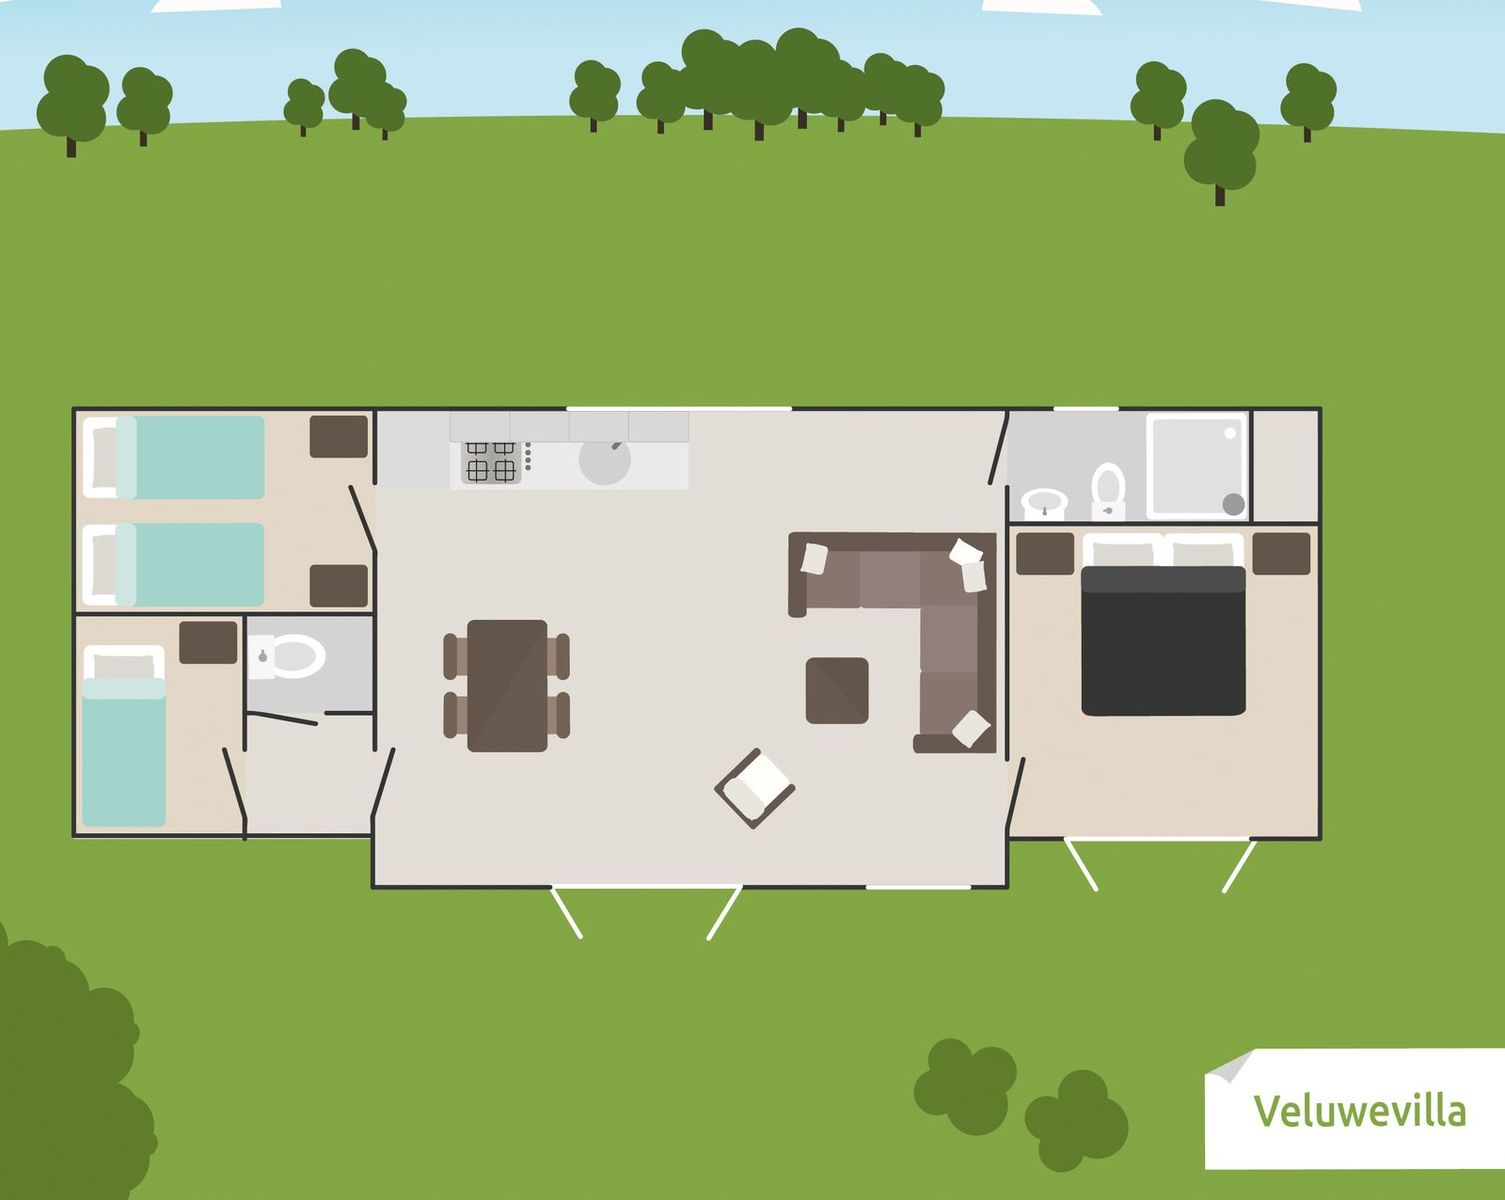 6 person Veluwe villa